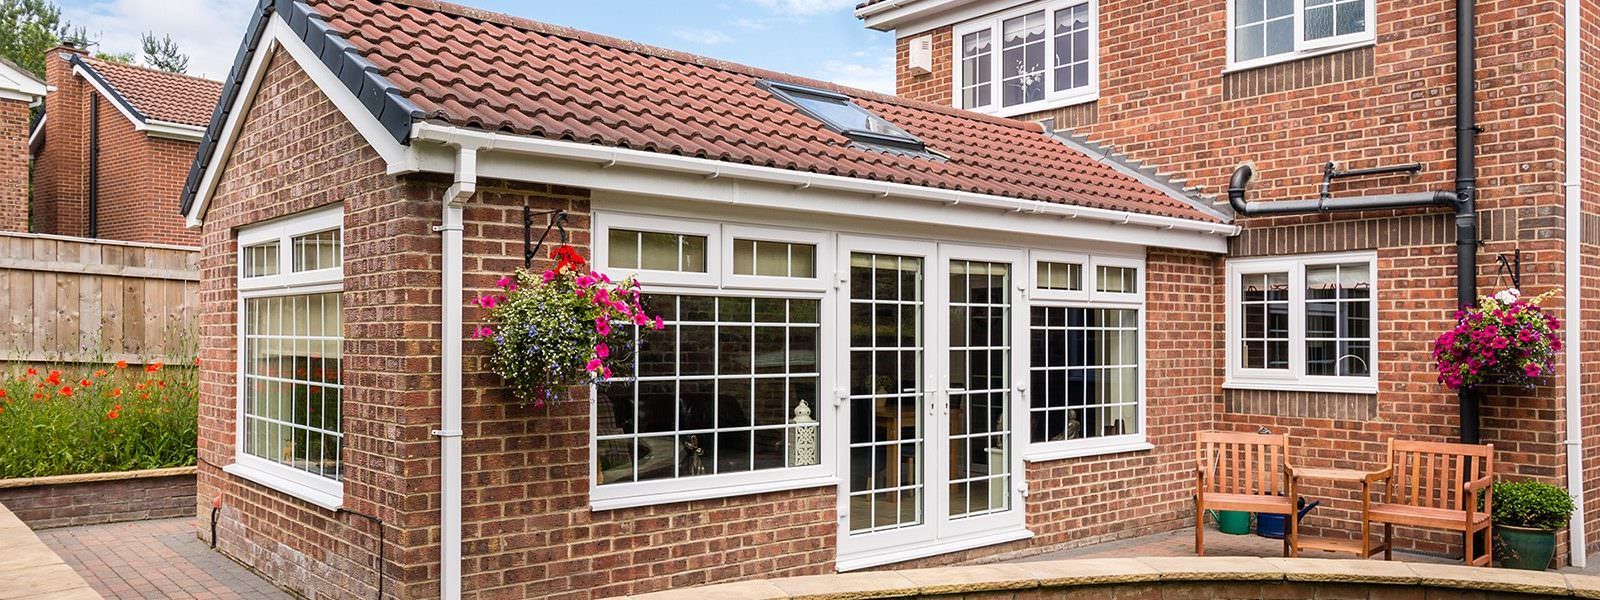 orangeries for sale coventry